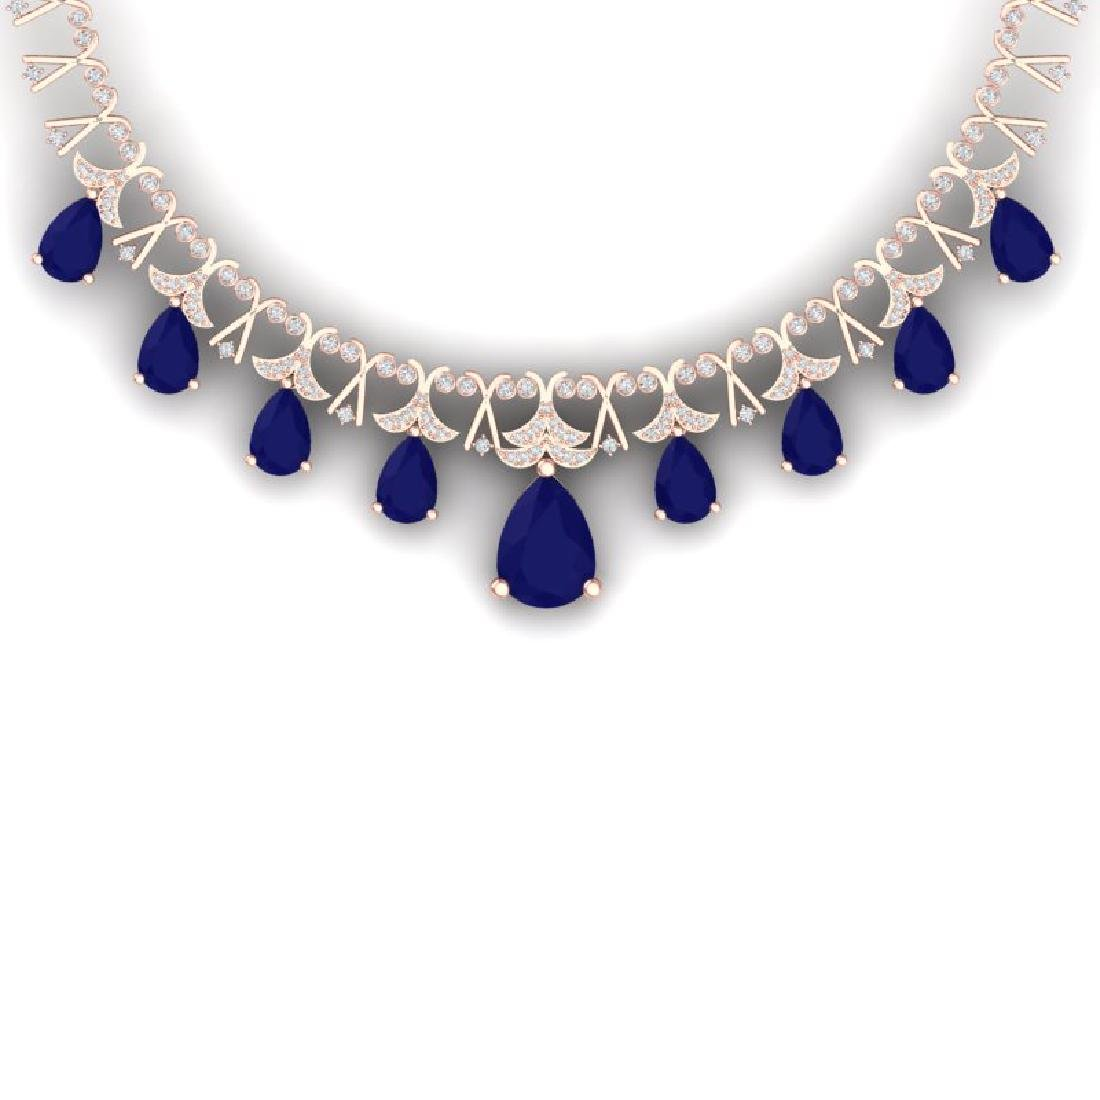 56.94 CTW Royalty Sapphire & VS Diamond Necklace 18K